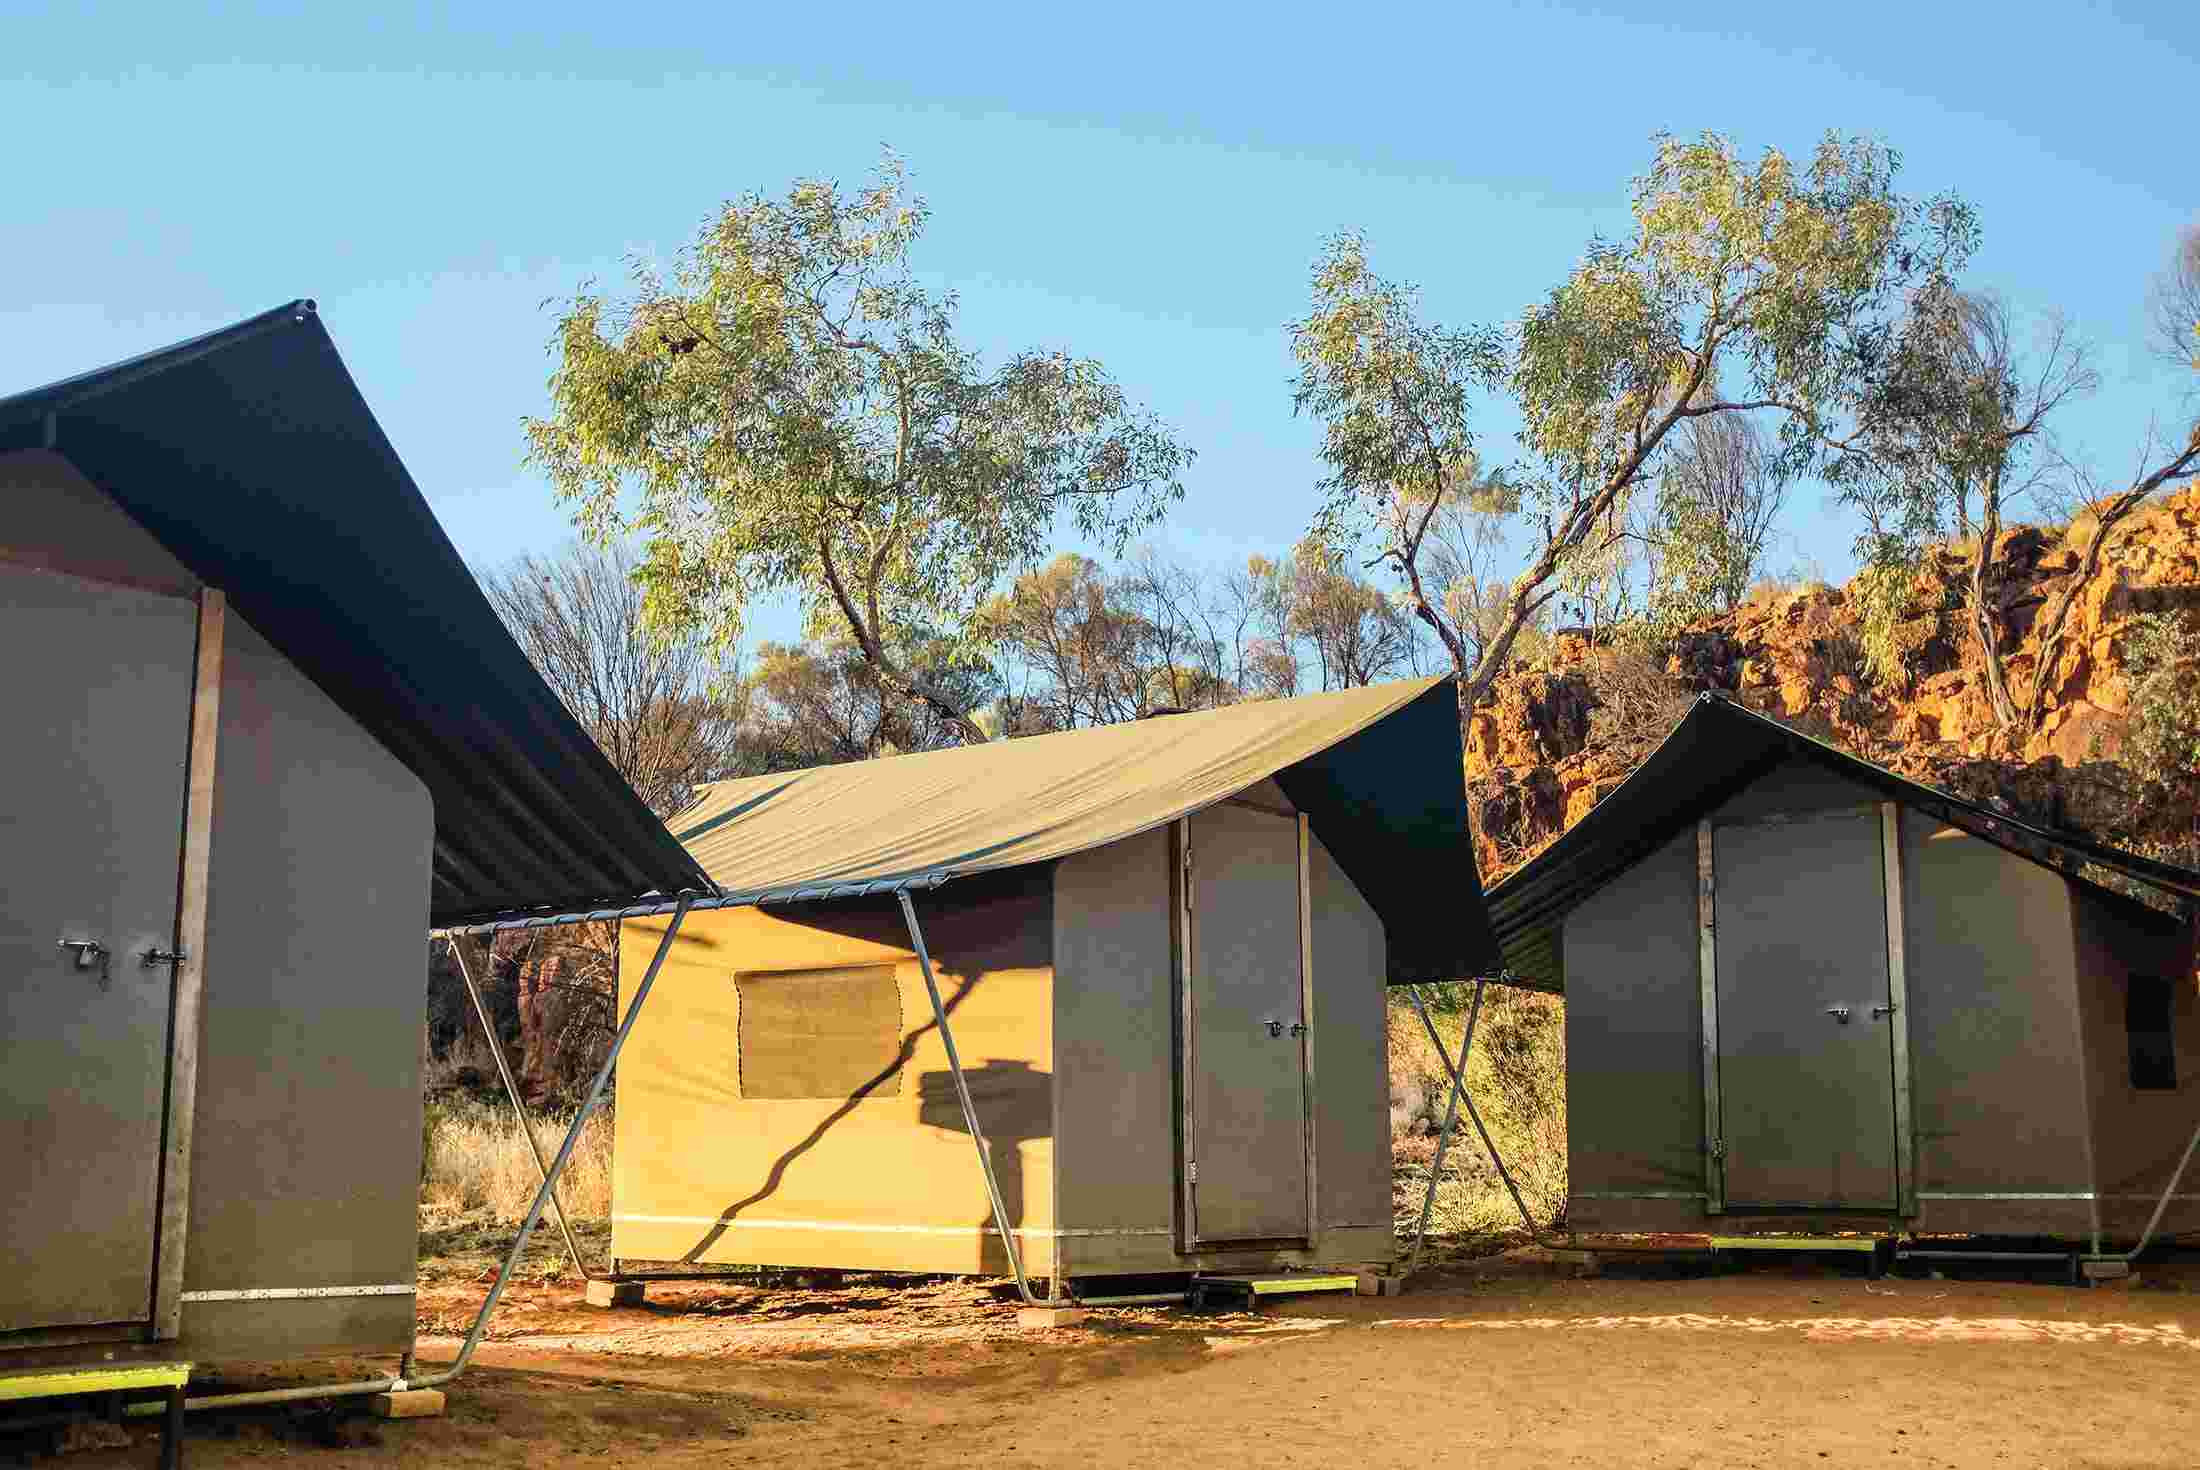 Basix accommodation in Kings Canyon, Northern Territory